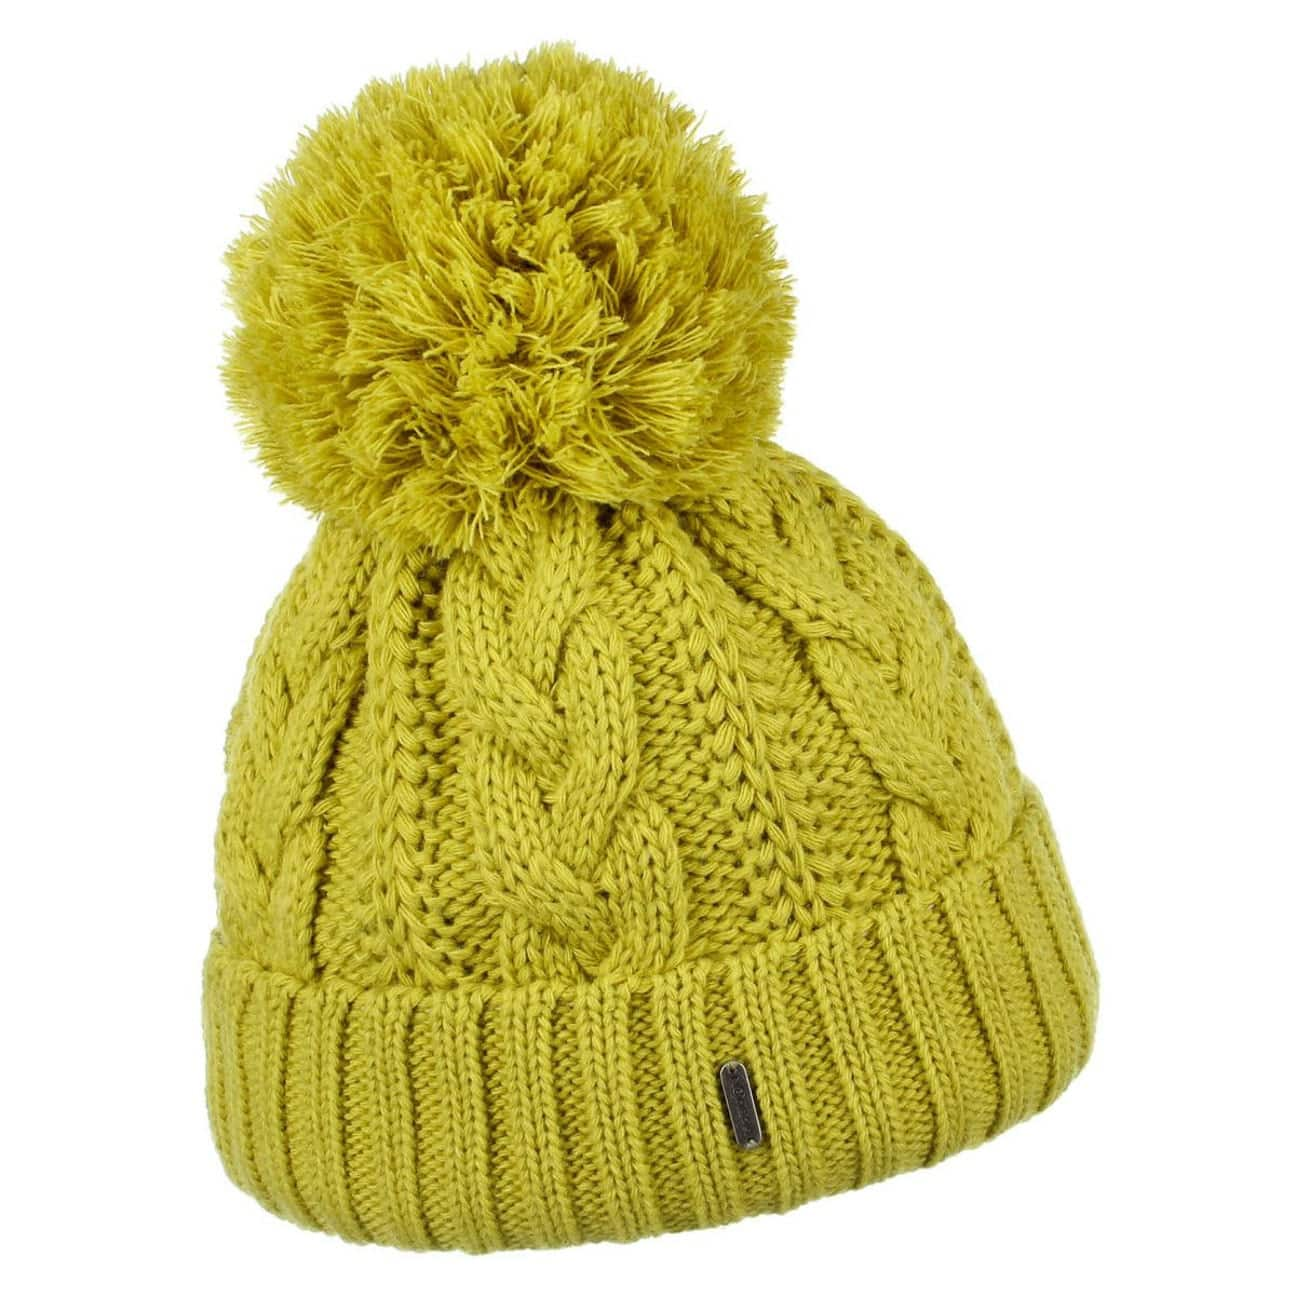 3ce4b8c2098 ... Giant Bobble Hat by McBURN - green 1 ...